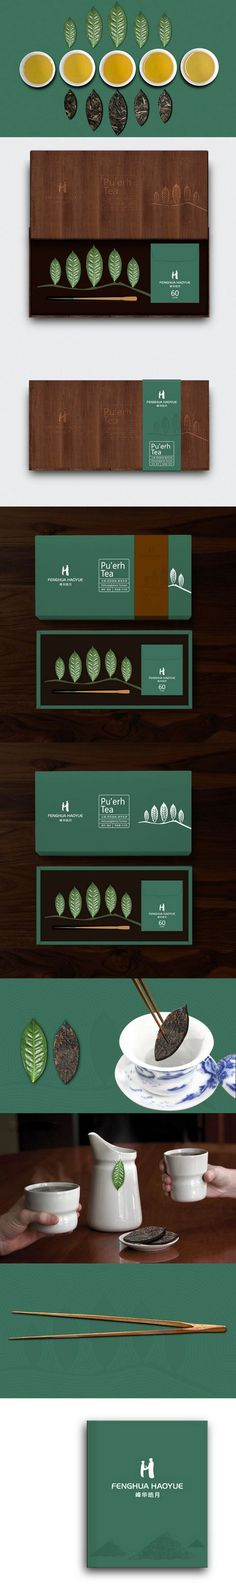 I would try this tea this is beautiful packaging PD Cool Packaging, Food Packaging Design, Tea Packaging, Brand Packaging, Branding Design, Tea Design, Food Design, Creative Design, Tea Brands